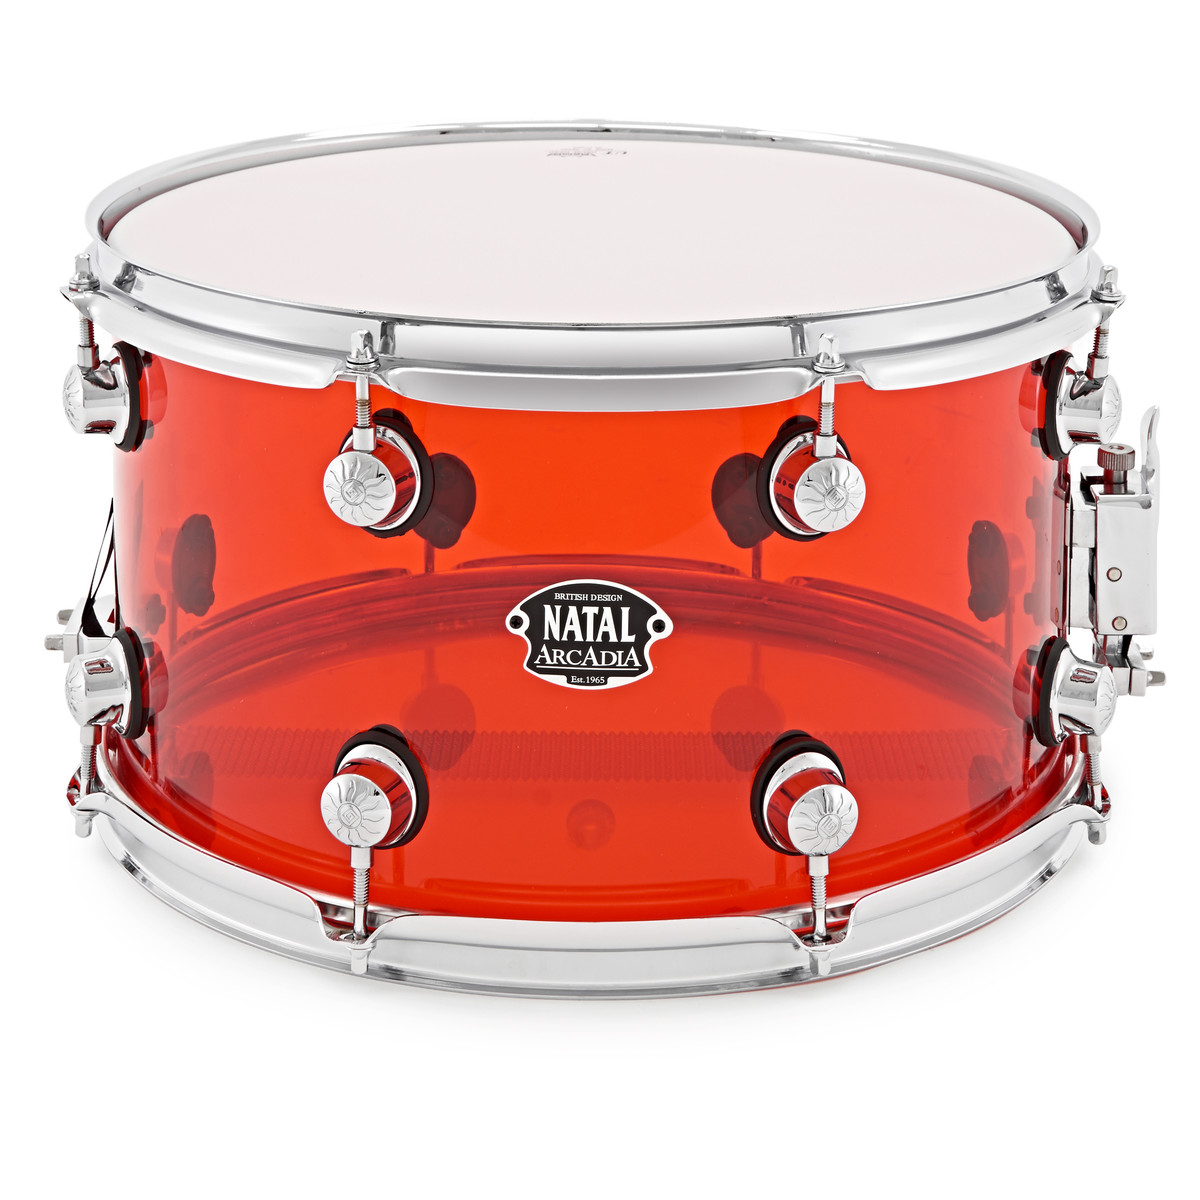 Natal Arcadia 14 X 8 Acrylic Snare Transparent Red Box Opened At Electrical Fuses On